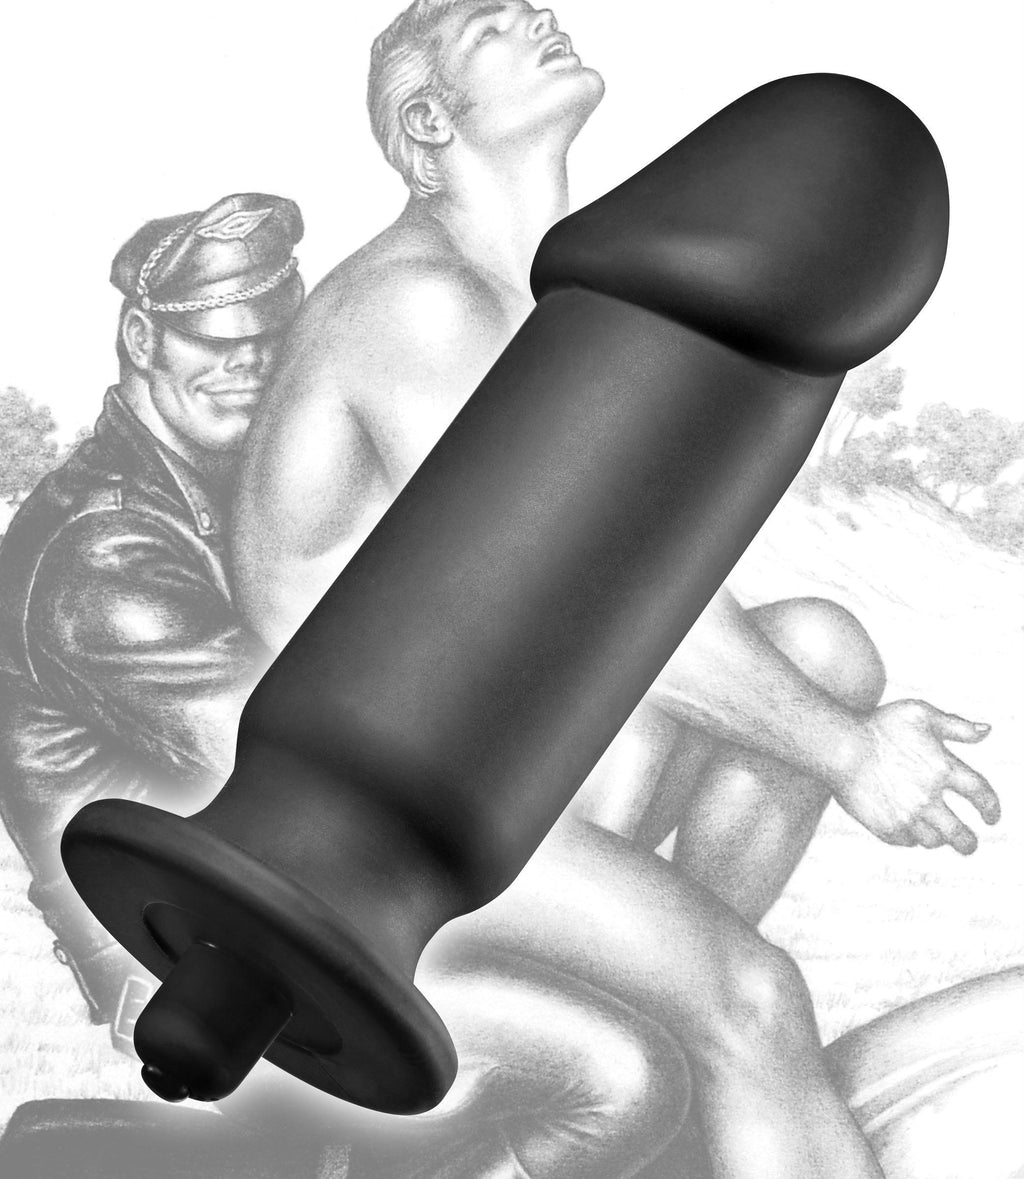 Tom of Finland XL Silicone Vibrating Anal Plug